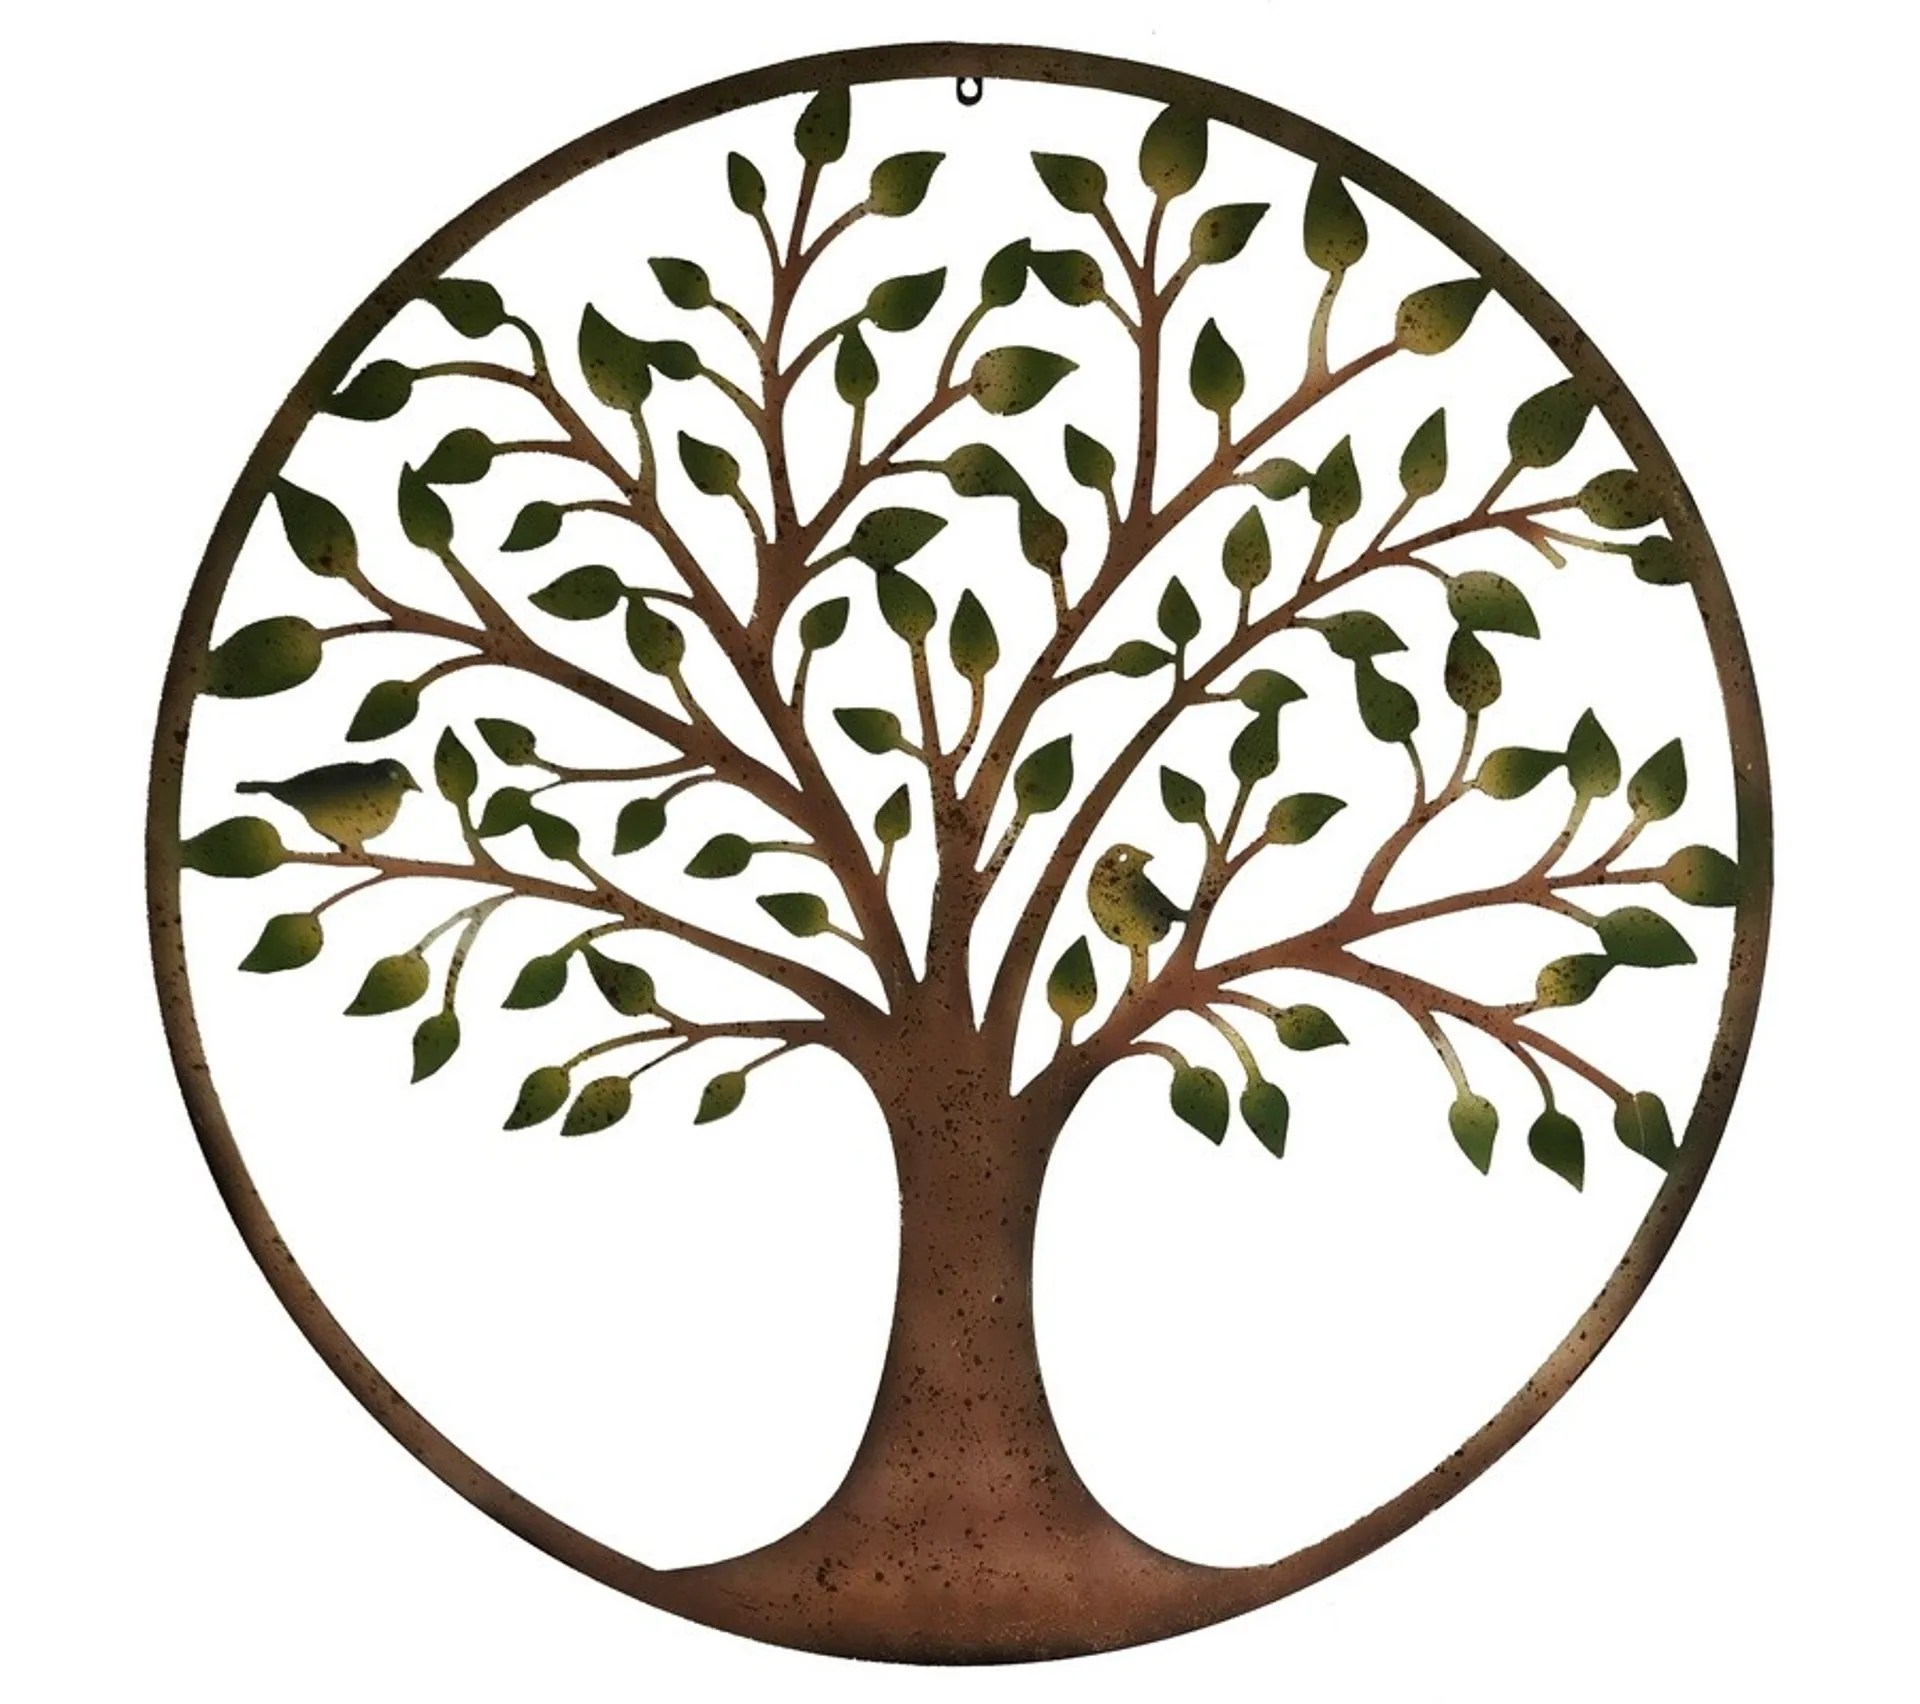 grand o99 cm fronton decoration murale metal fer rond arbre coloree